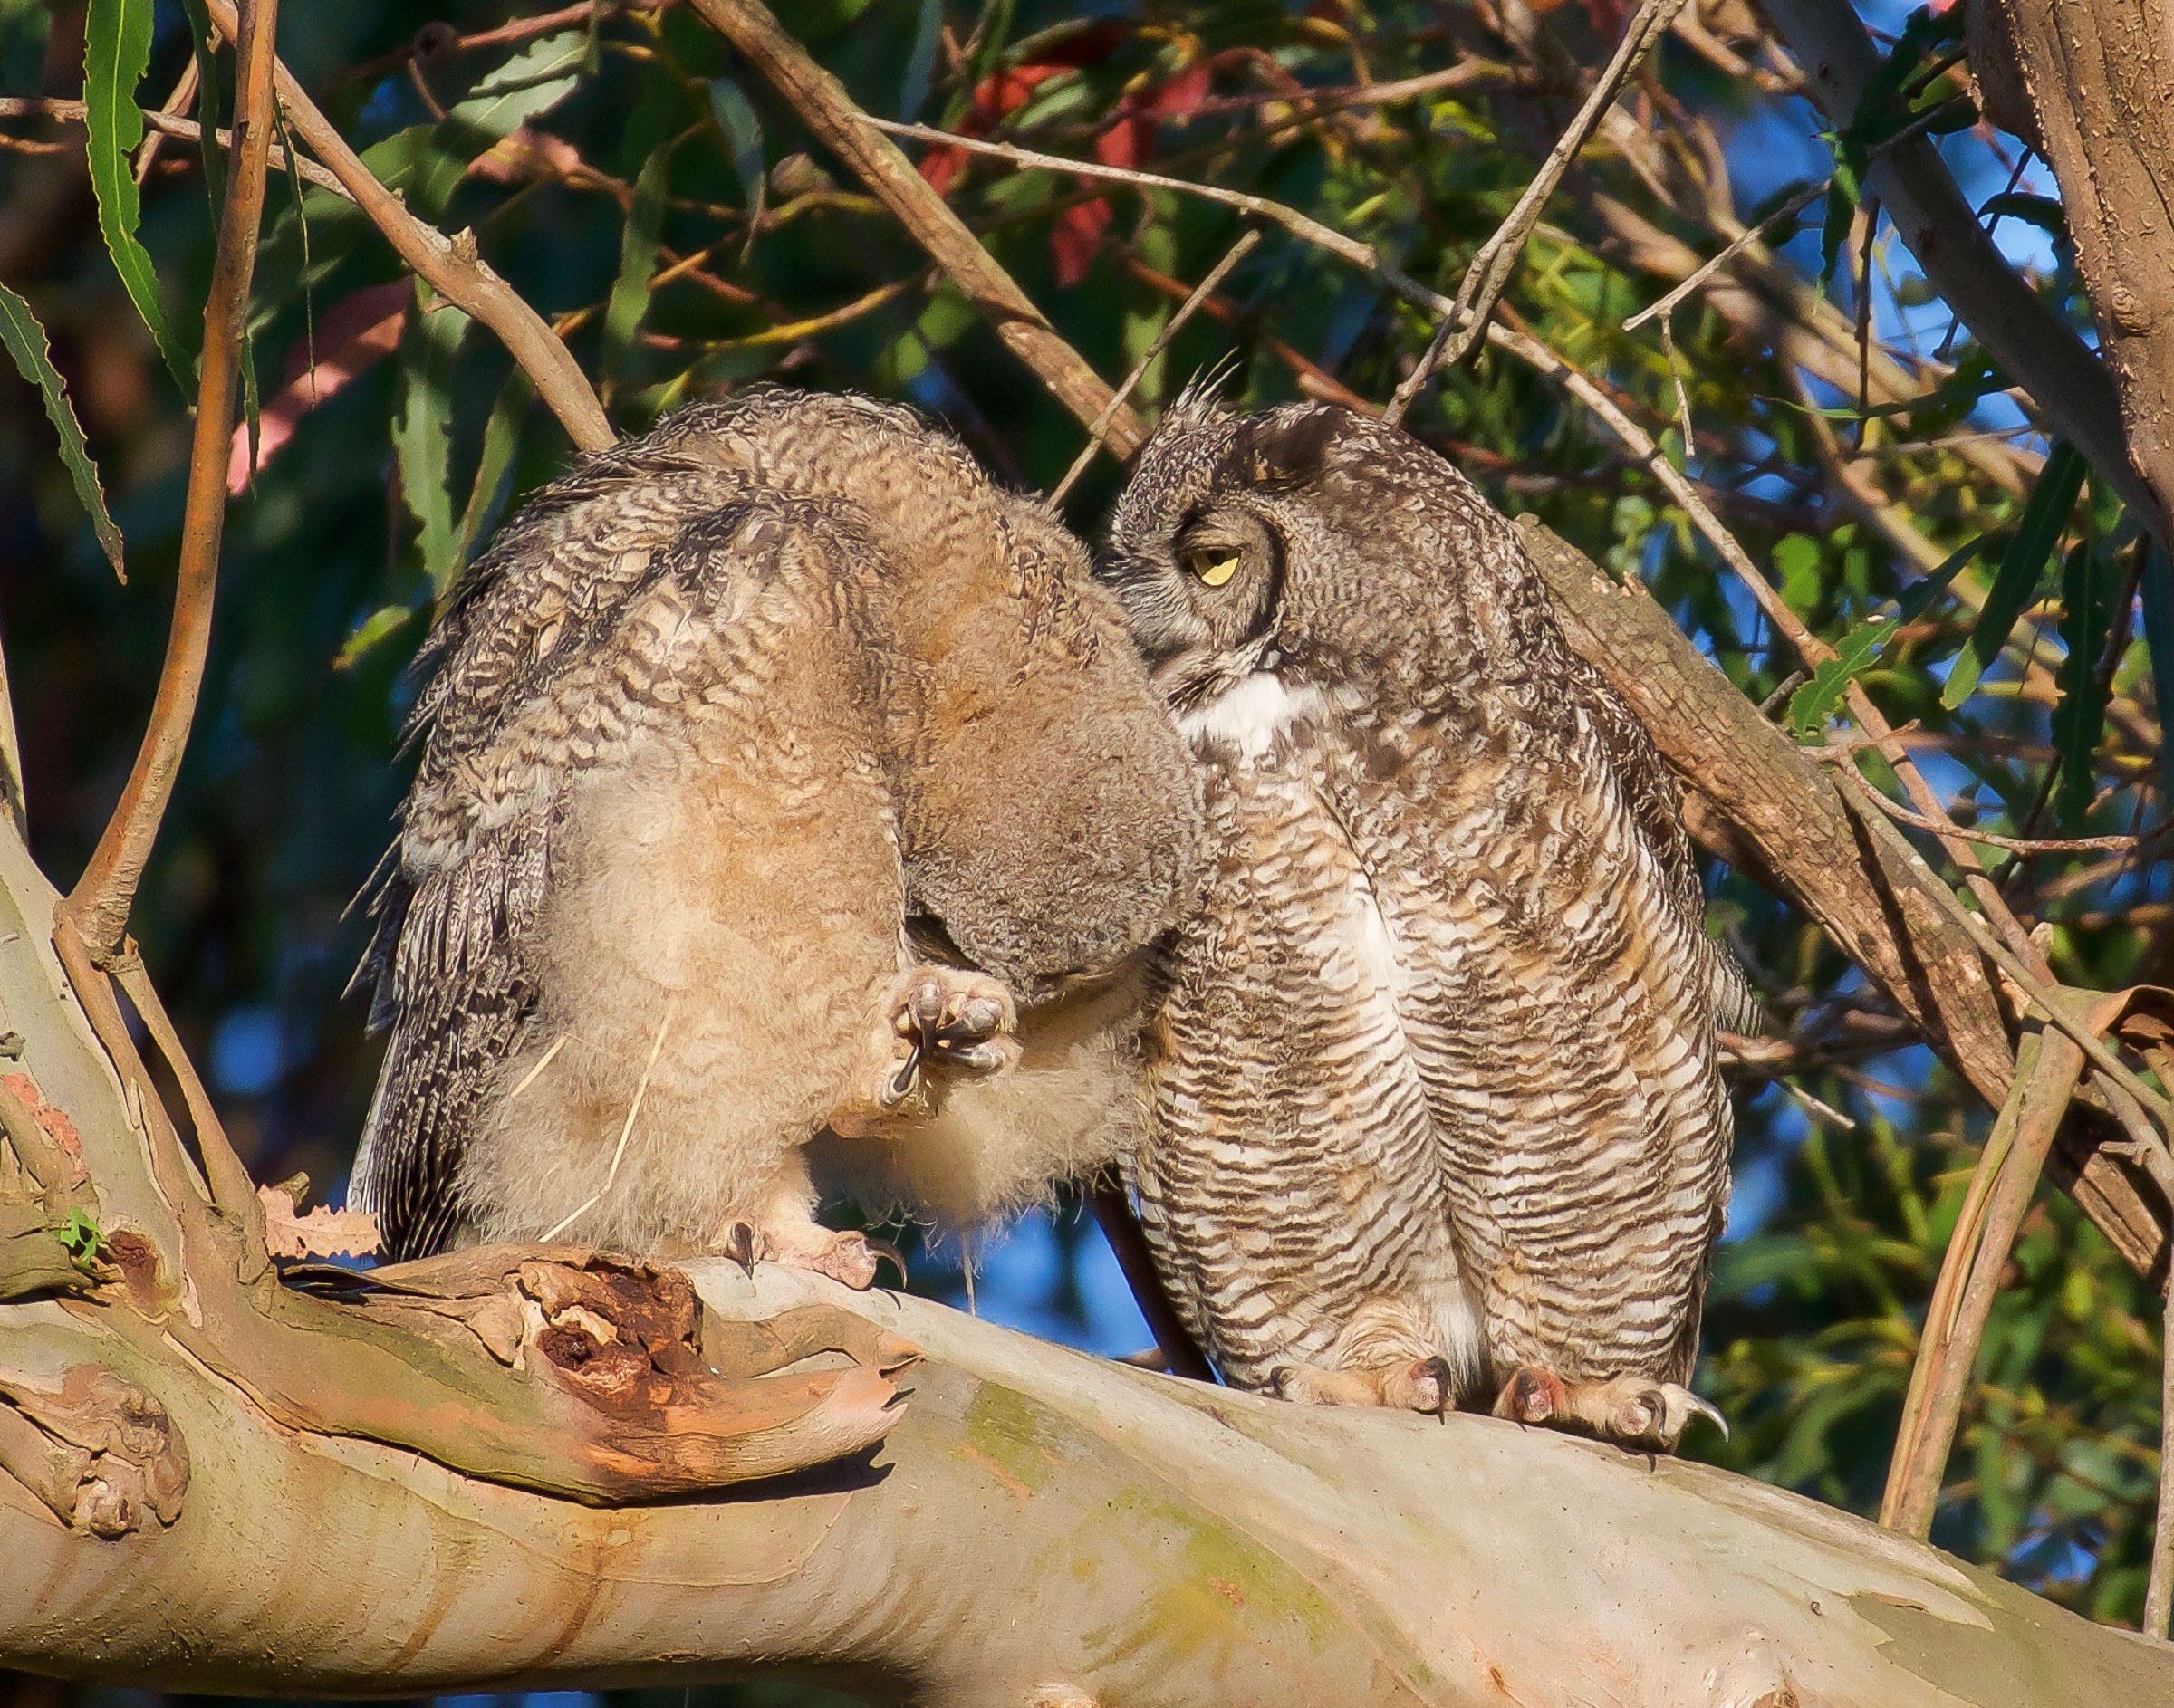 mother-owl-and-owlet-on-branch-grooming-9.jpg